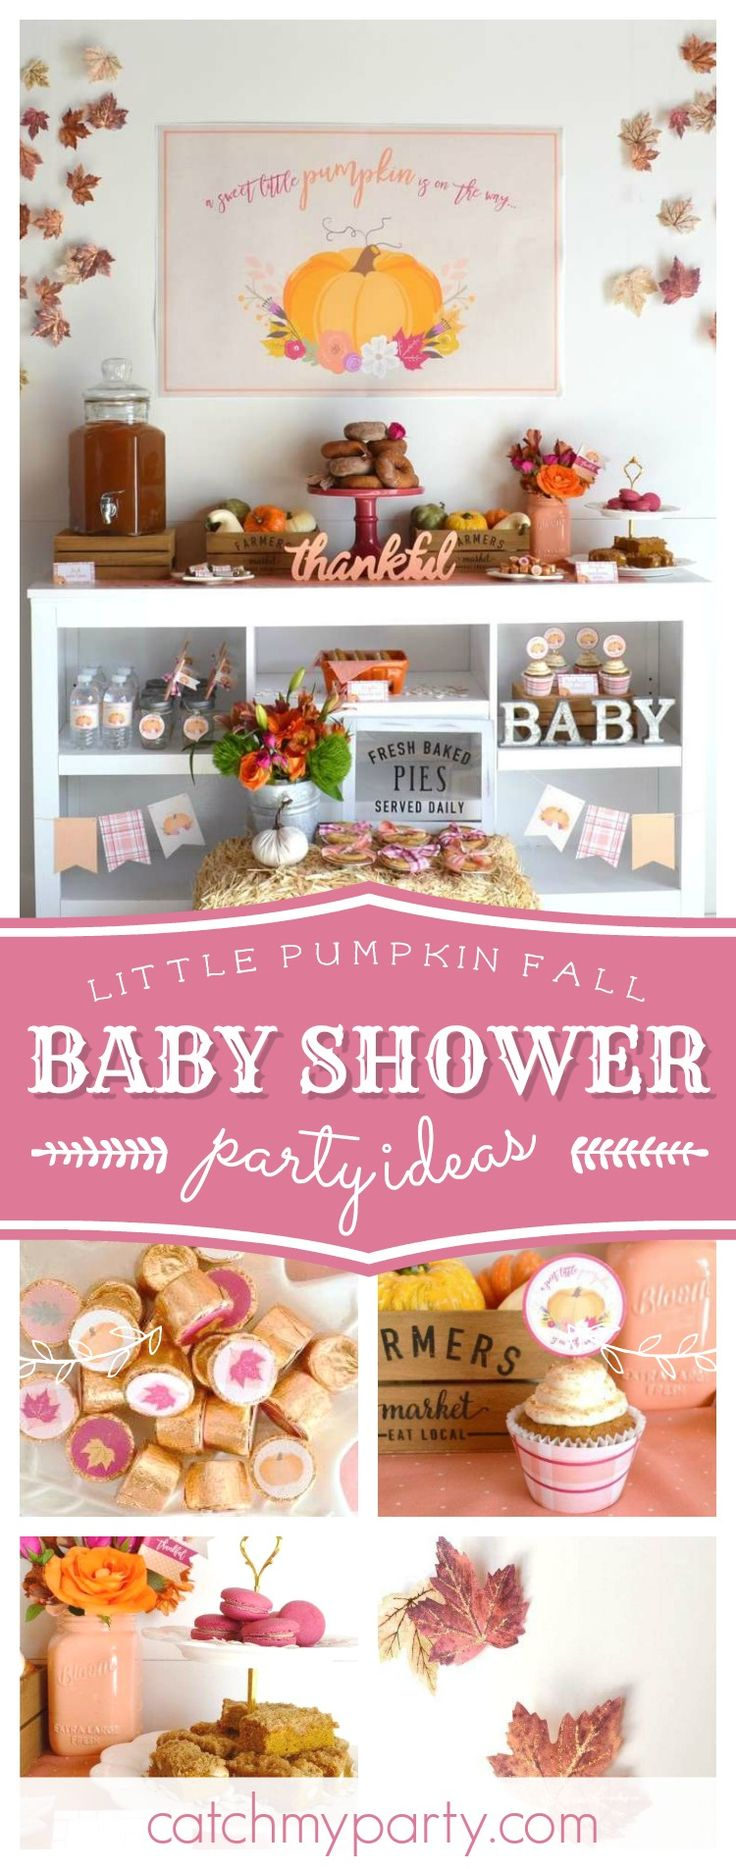 Take a look at this gorgeous rustic Little Pumpkin Fall Baby Shower! The dessert table is so pretty!! See more party ideas and share yours at CatchMyParty.com  #pumpkin #babyshower